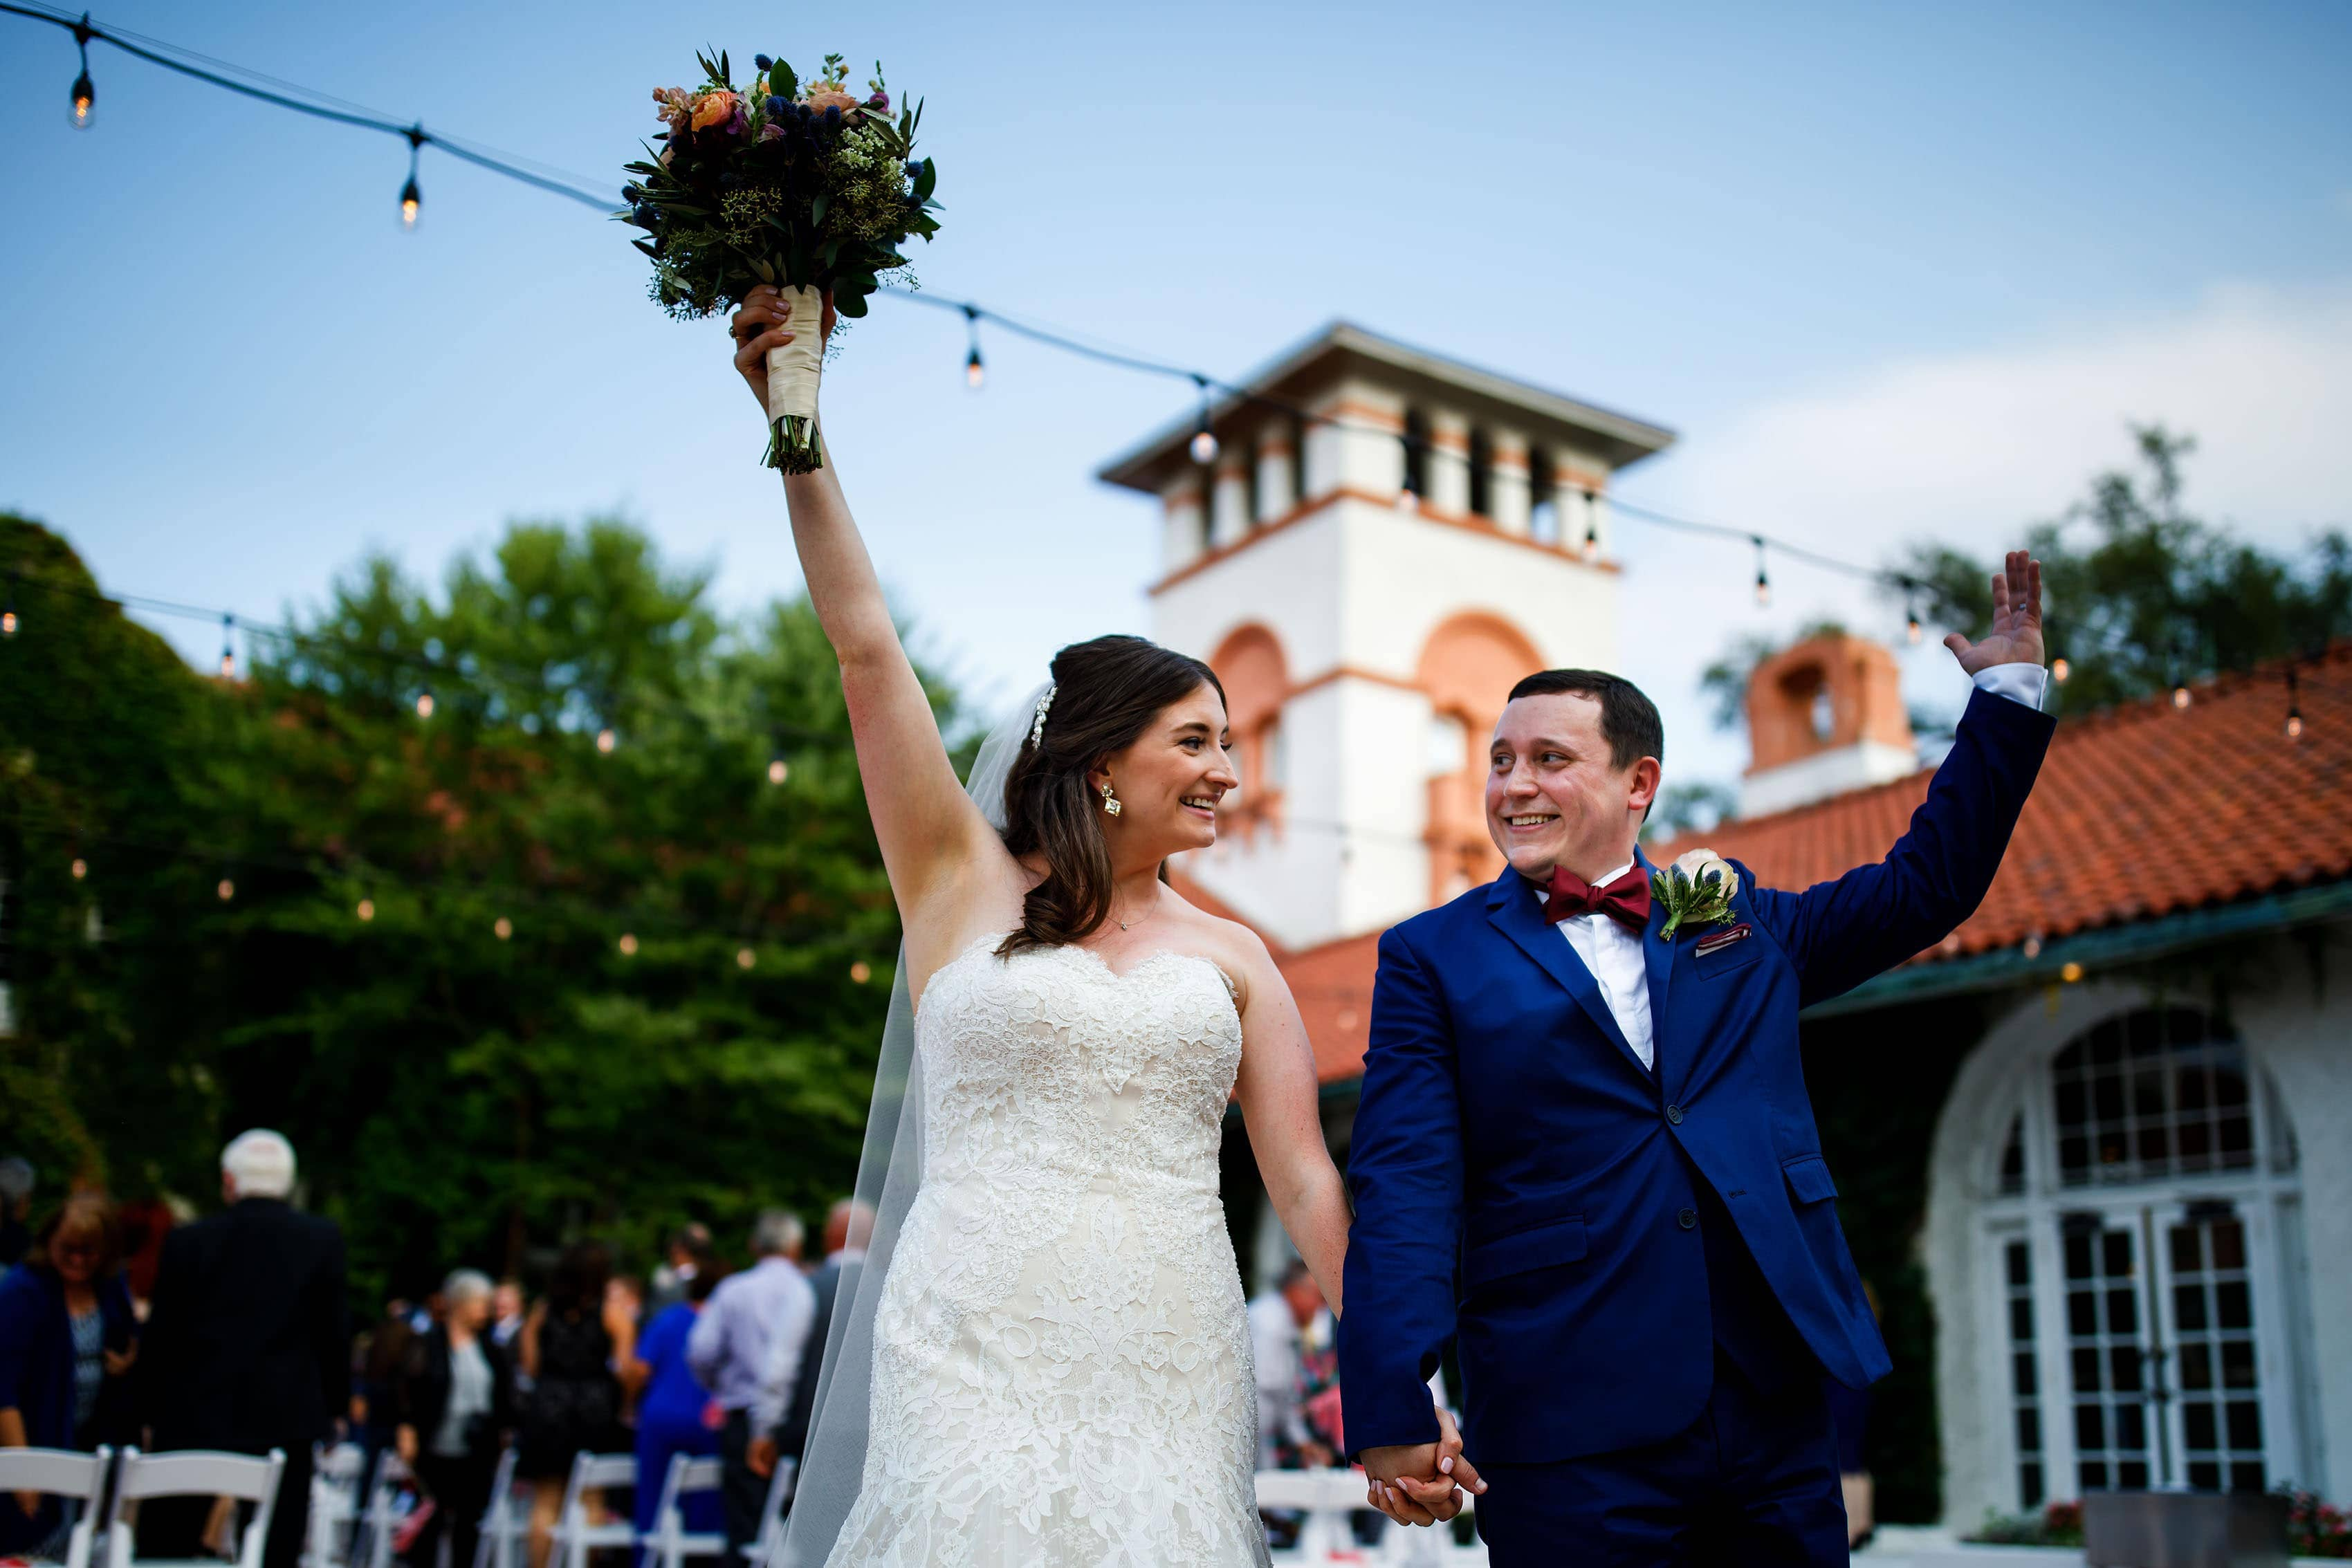 The bride and groom celebrate after their Ravisloe Country Club wedding ceremony in the summer in Homewood Illinois